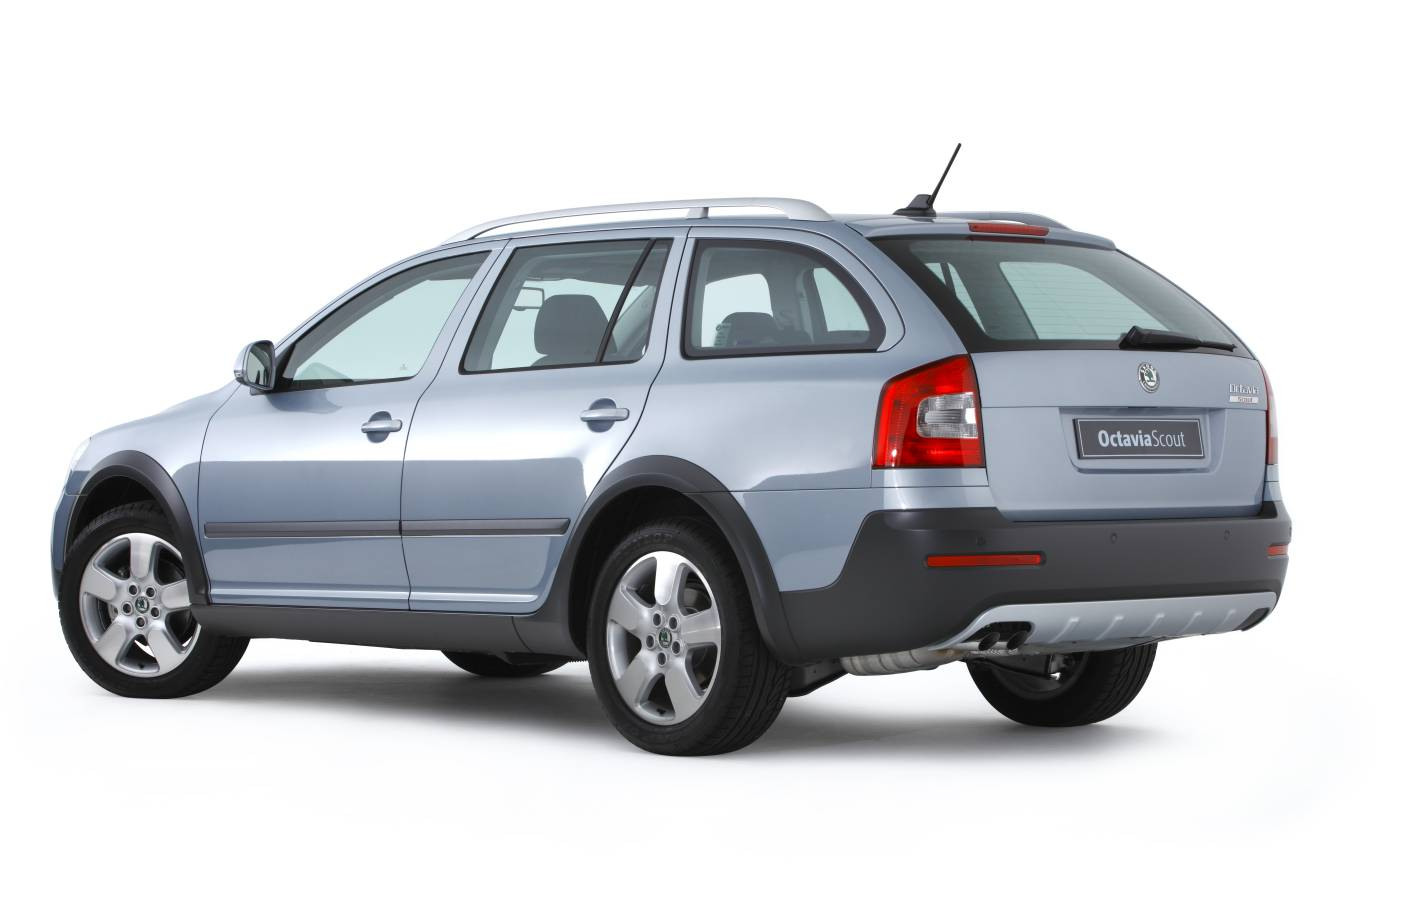 skoda octavia scout tdi 4x4 wagon wallpaper. Black Bedroom Furniture Sets. Home Design Ideas